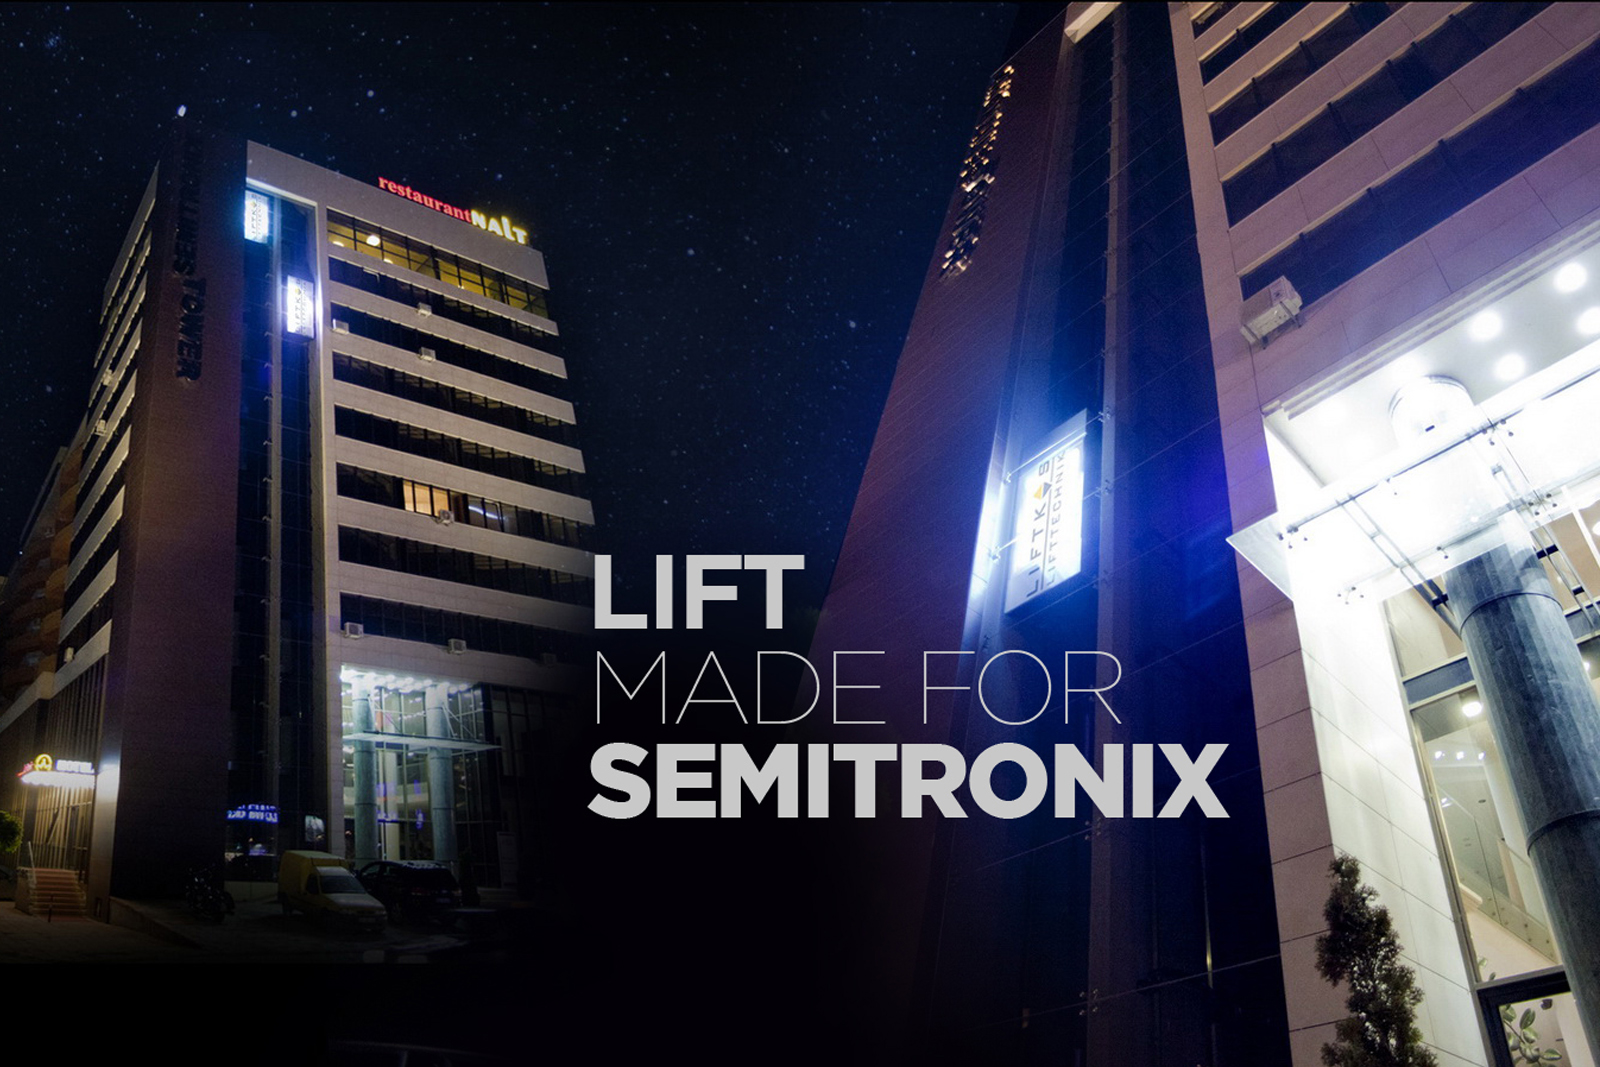 Lift for Semitronix